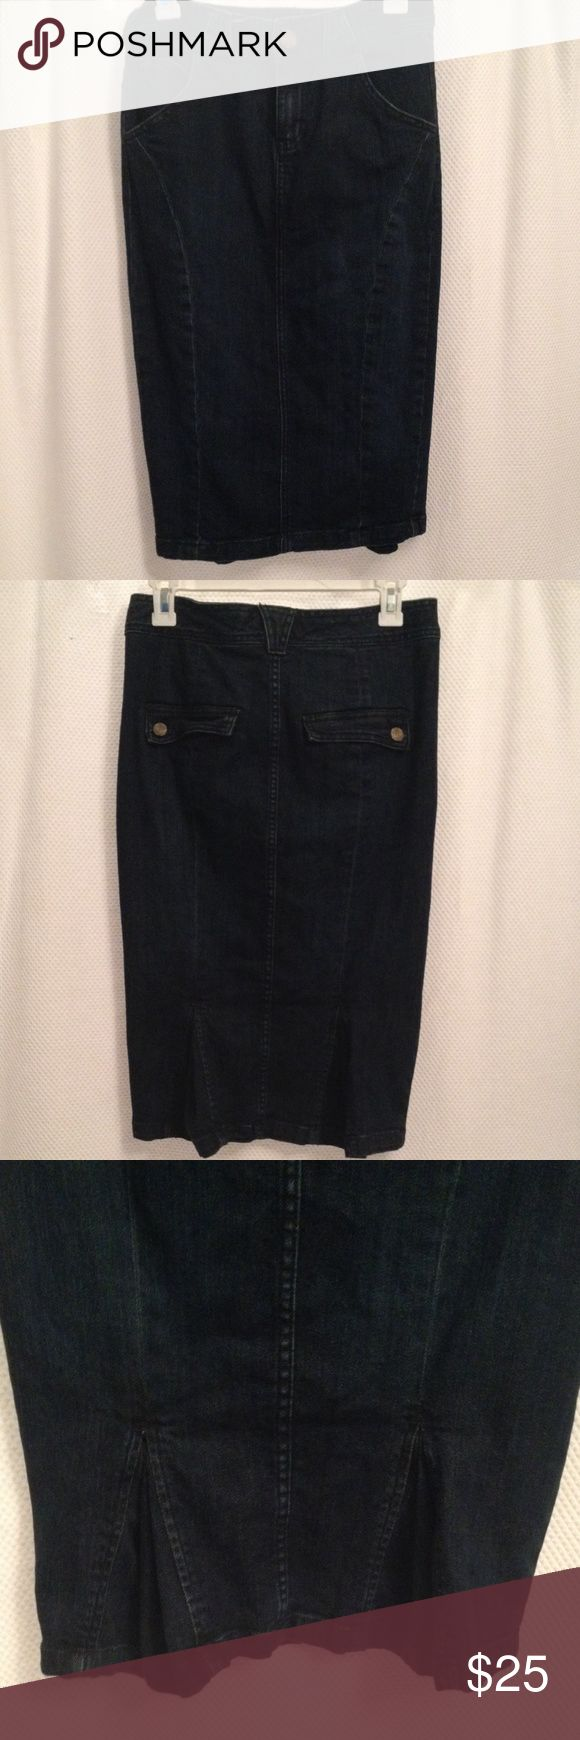 """Calvin Klein Jean Pencil Skirt Calvin Klein Dark blue Denim Pencil skirt to hug those curves!  Cute kick pleat at the bottom of the back of the skirt. Size 2 Measures 15"""" at waist, 16-1/2"""" at hips and 25"""" long. Has a bit of stretch. Calvin Klein Jeans Skirts Pencil"""